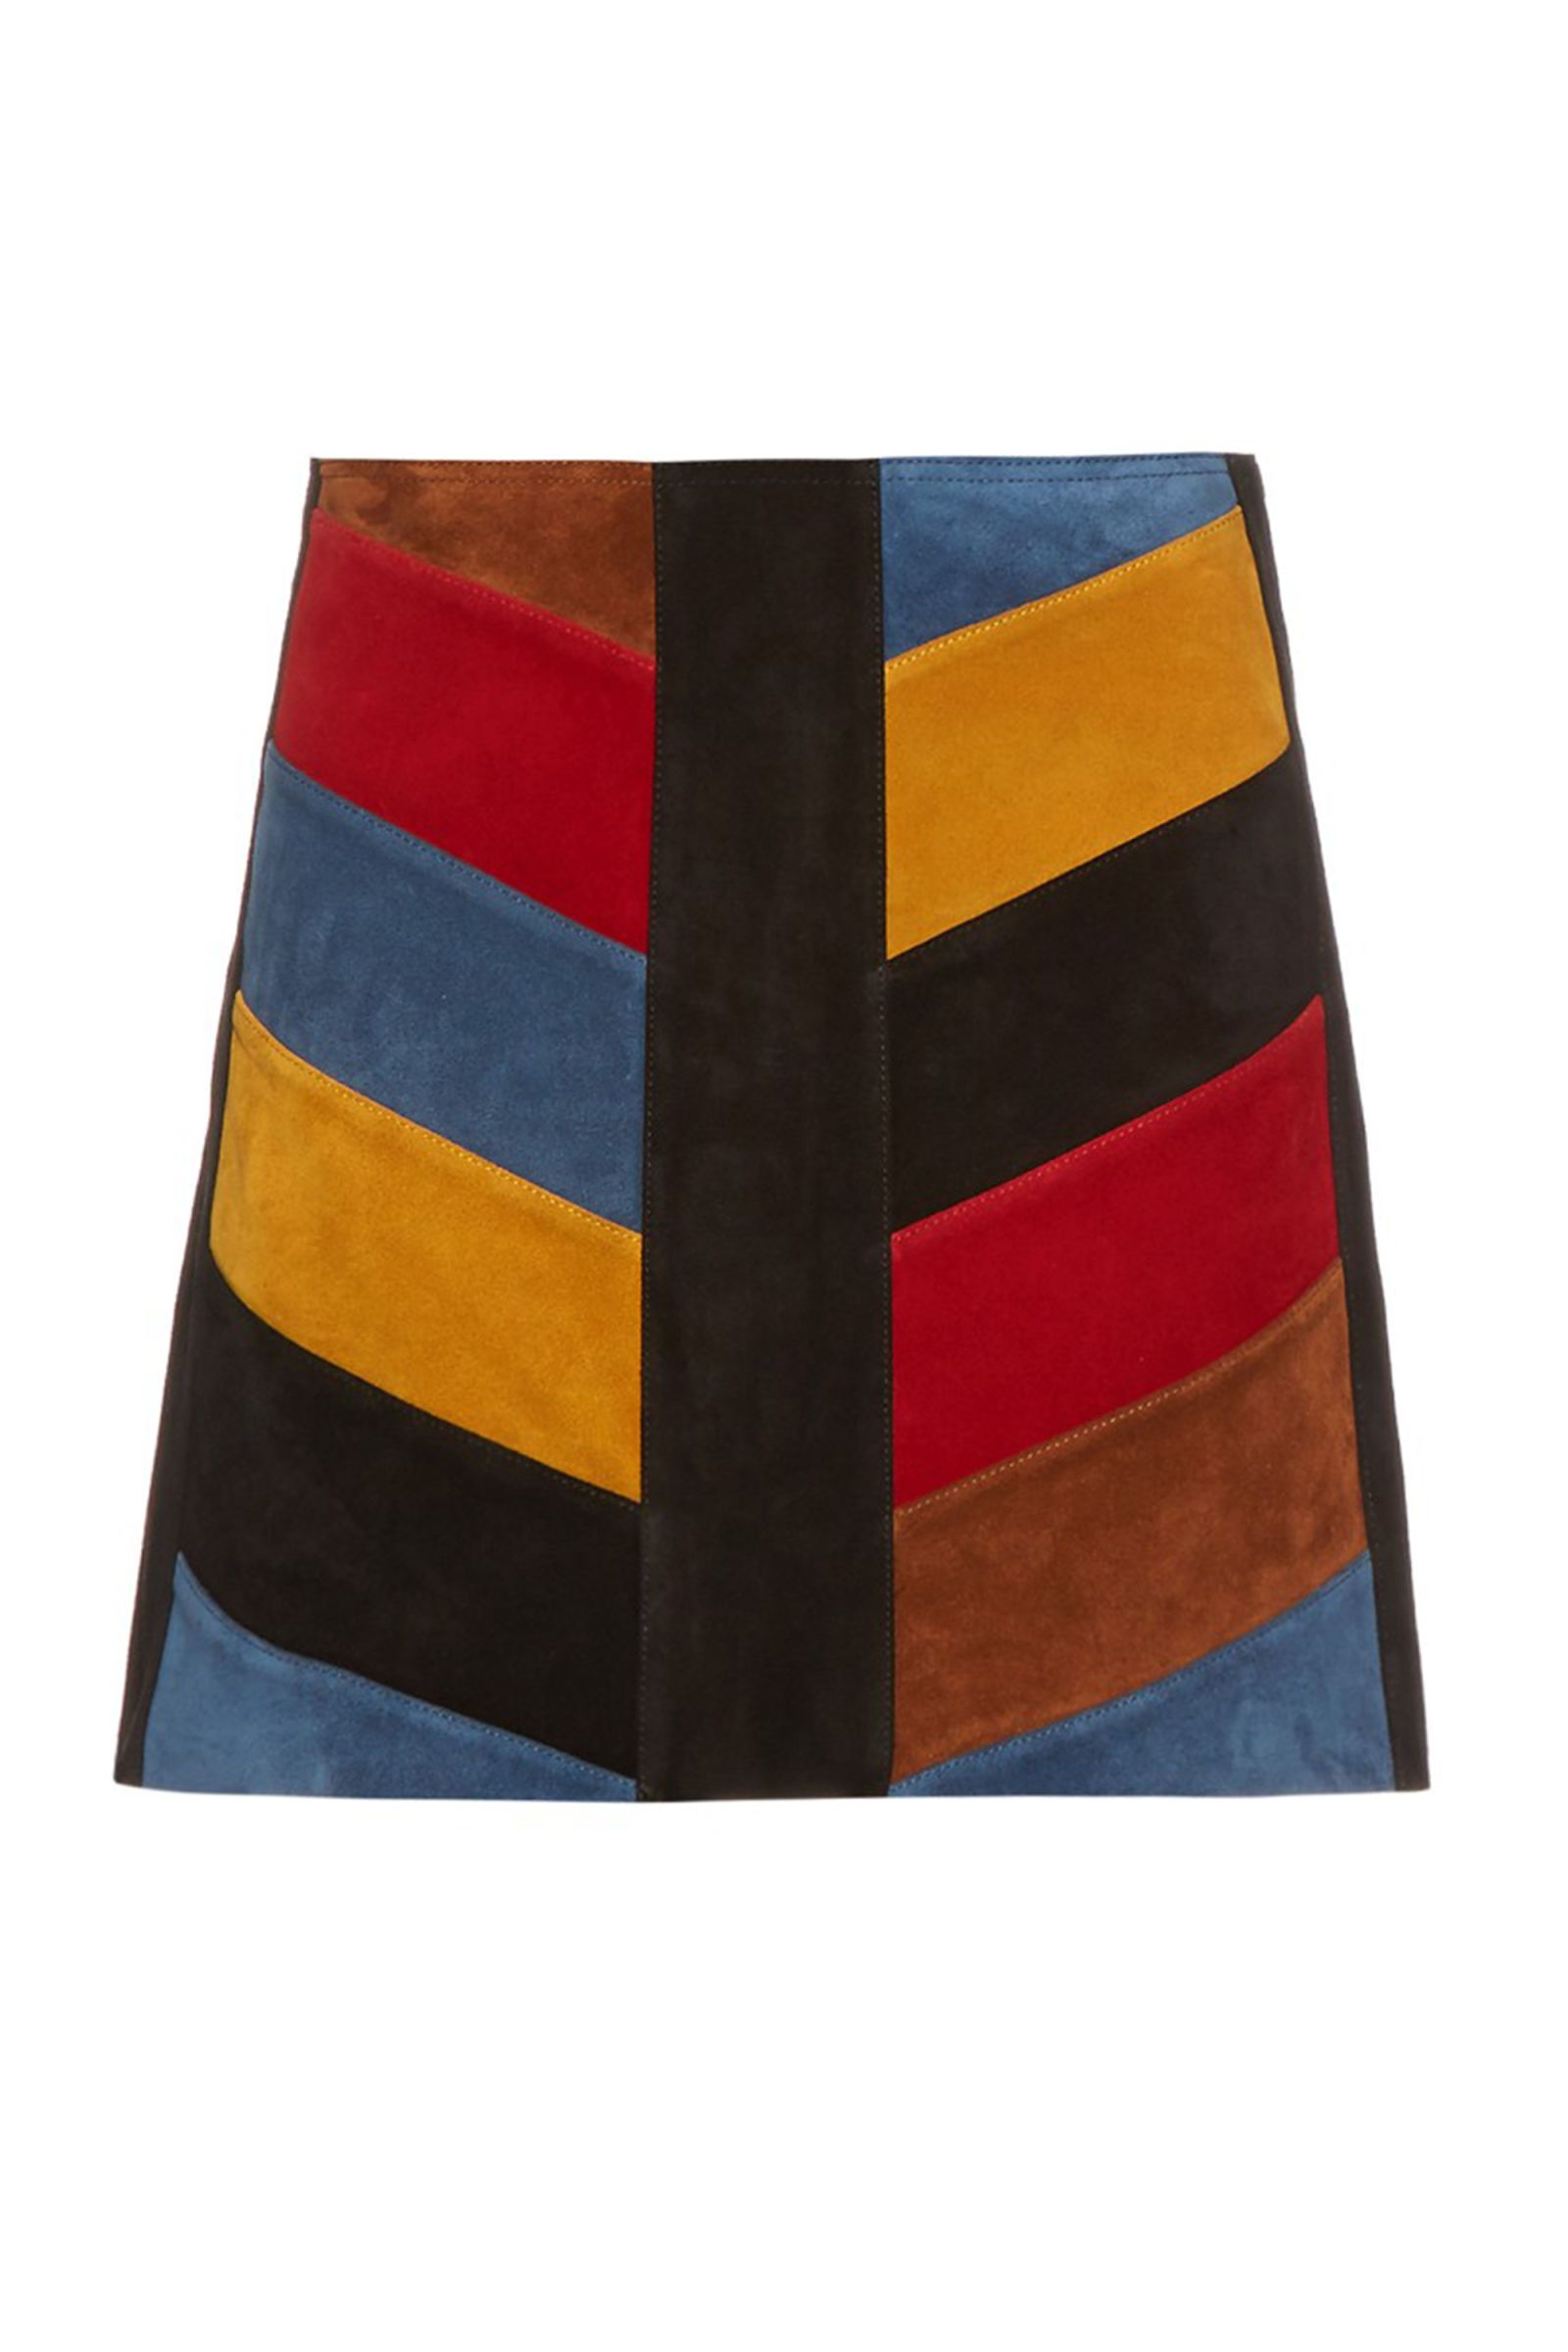 537cc9b524 17 Miniskirts That Flatter Every Body Type - M.I.H Jeans Chevron Suede Mini  Skirt, $541; matchesfashion.com